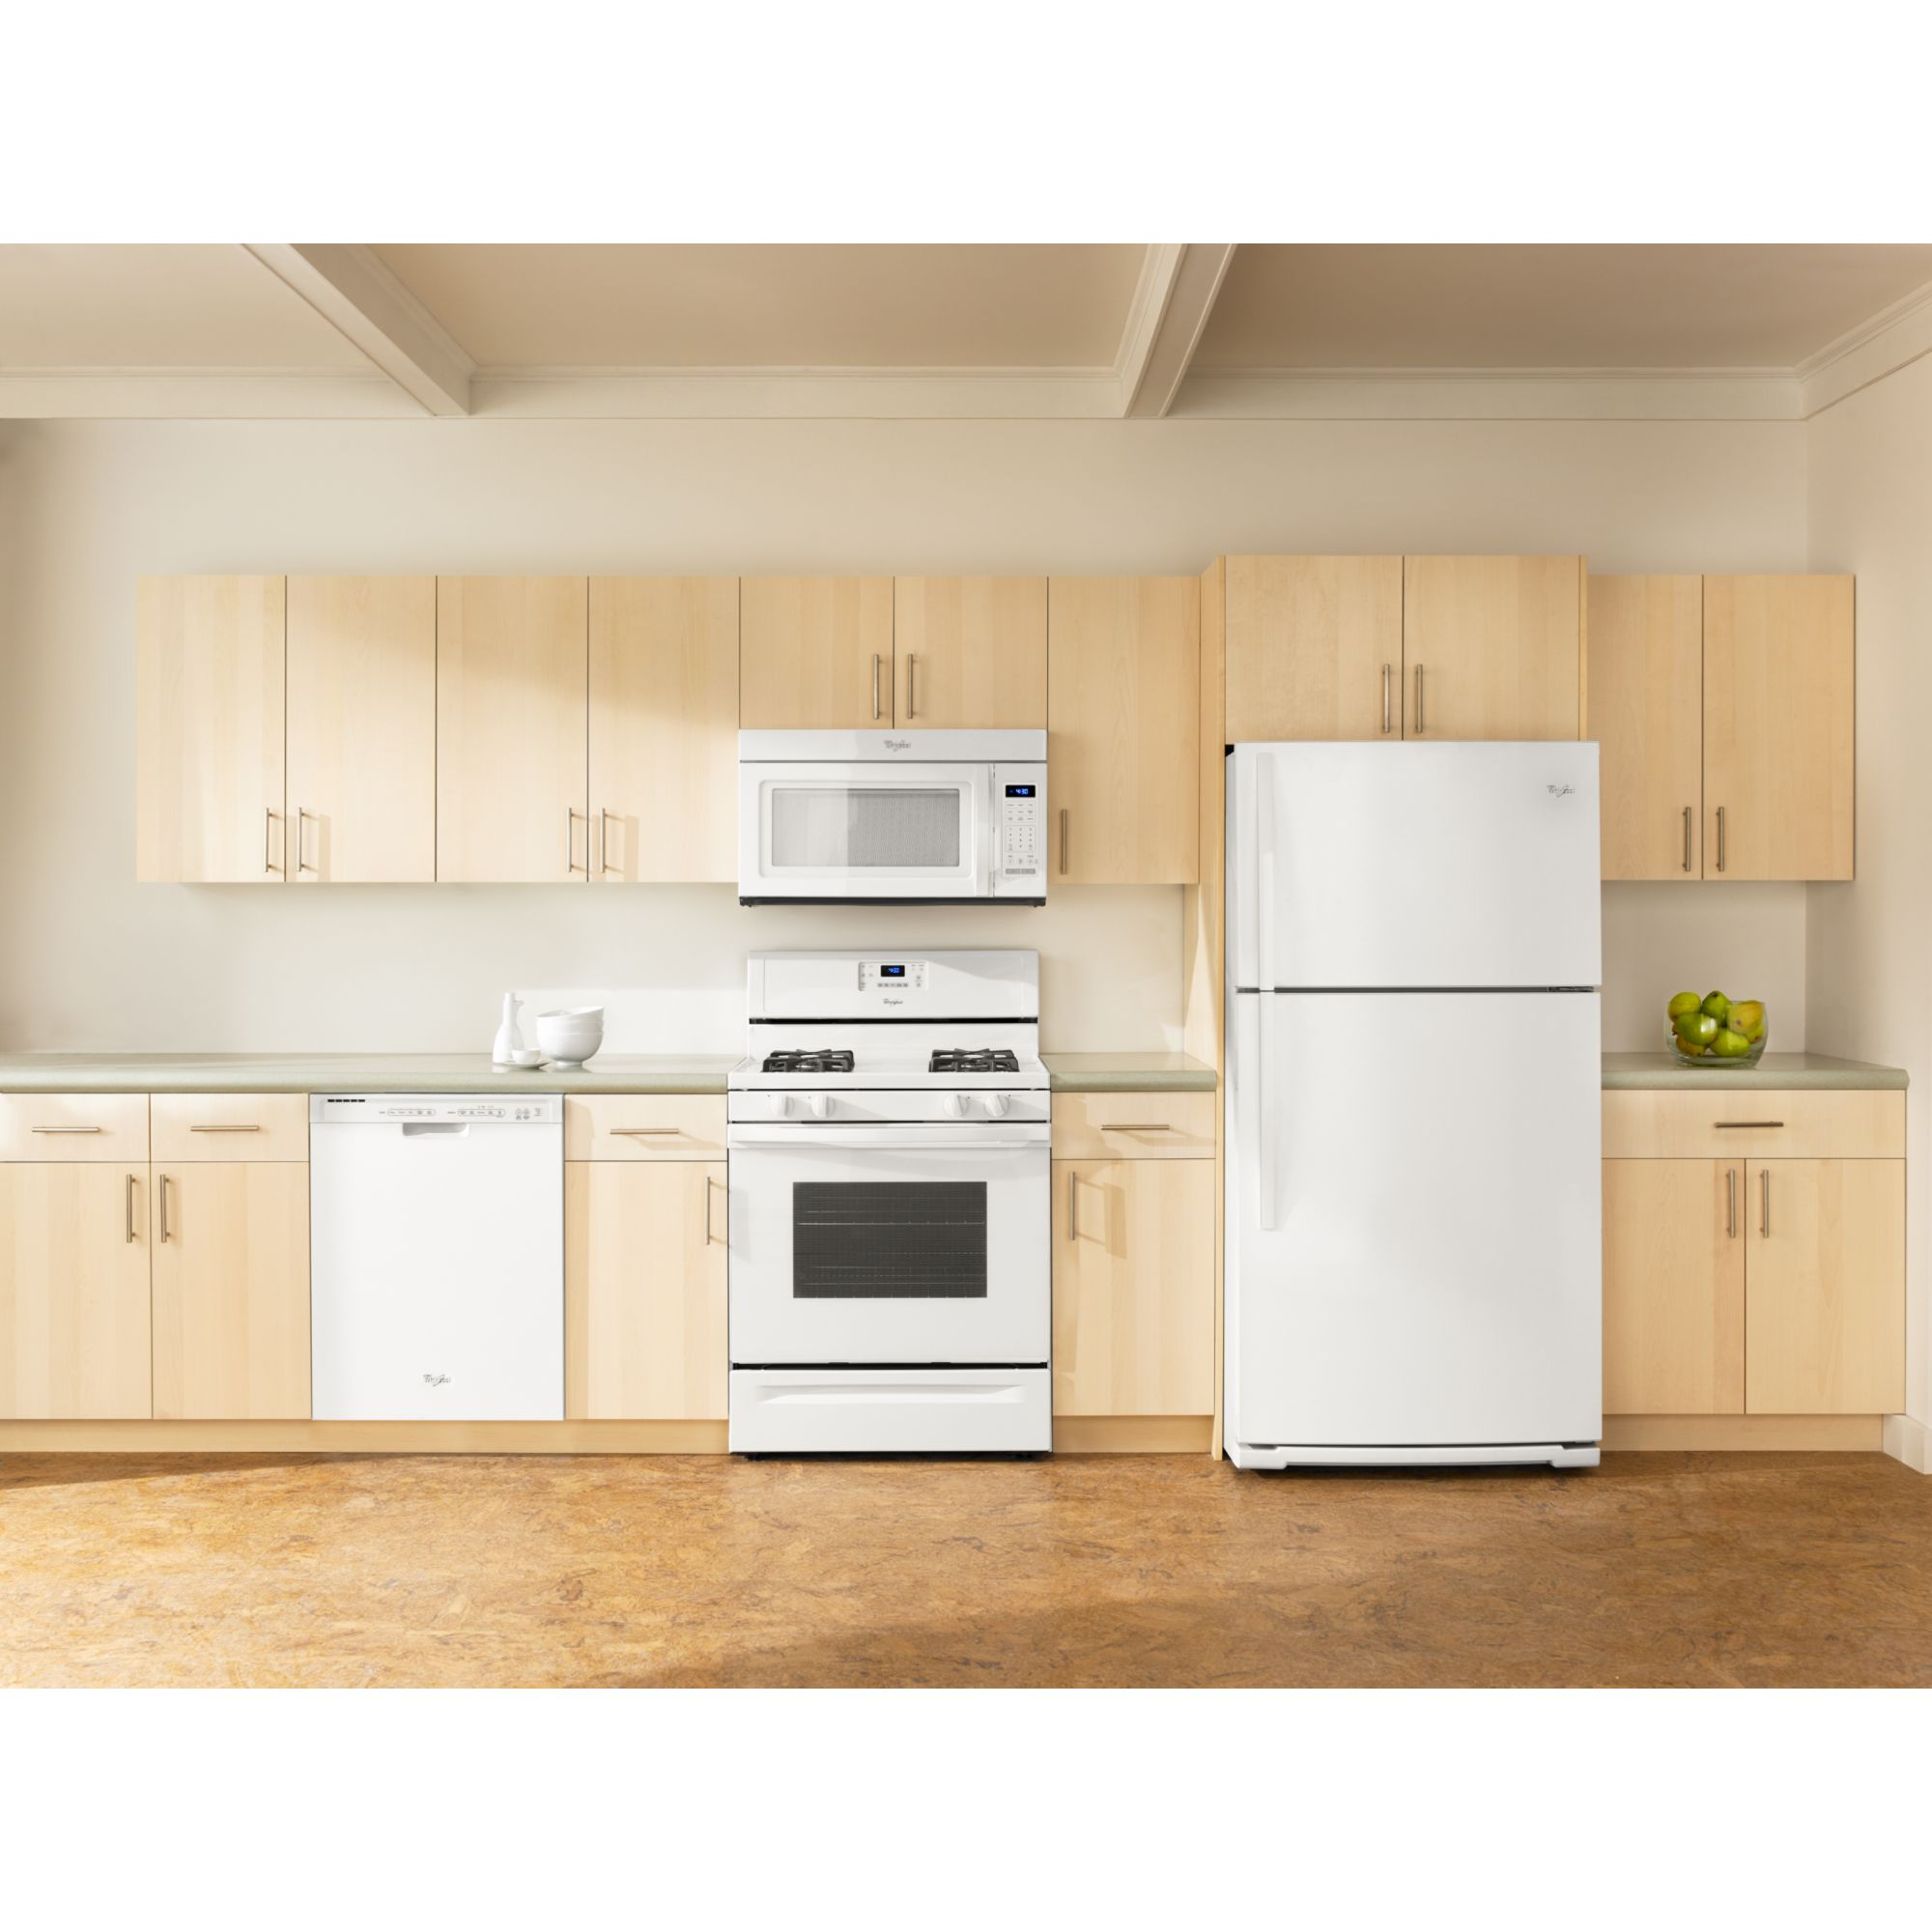 Whirlpool 30 in. Freestanding Gas Range w/ AccuBake®  - White